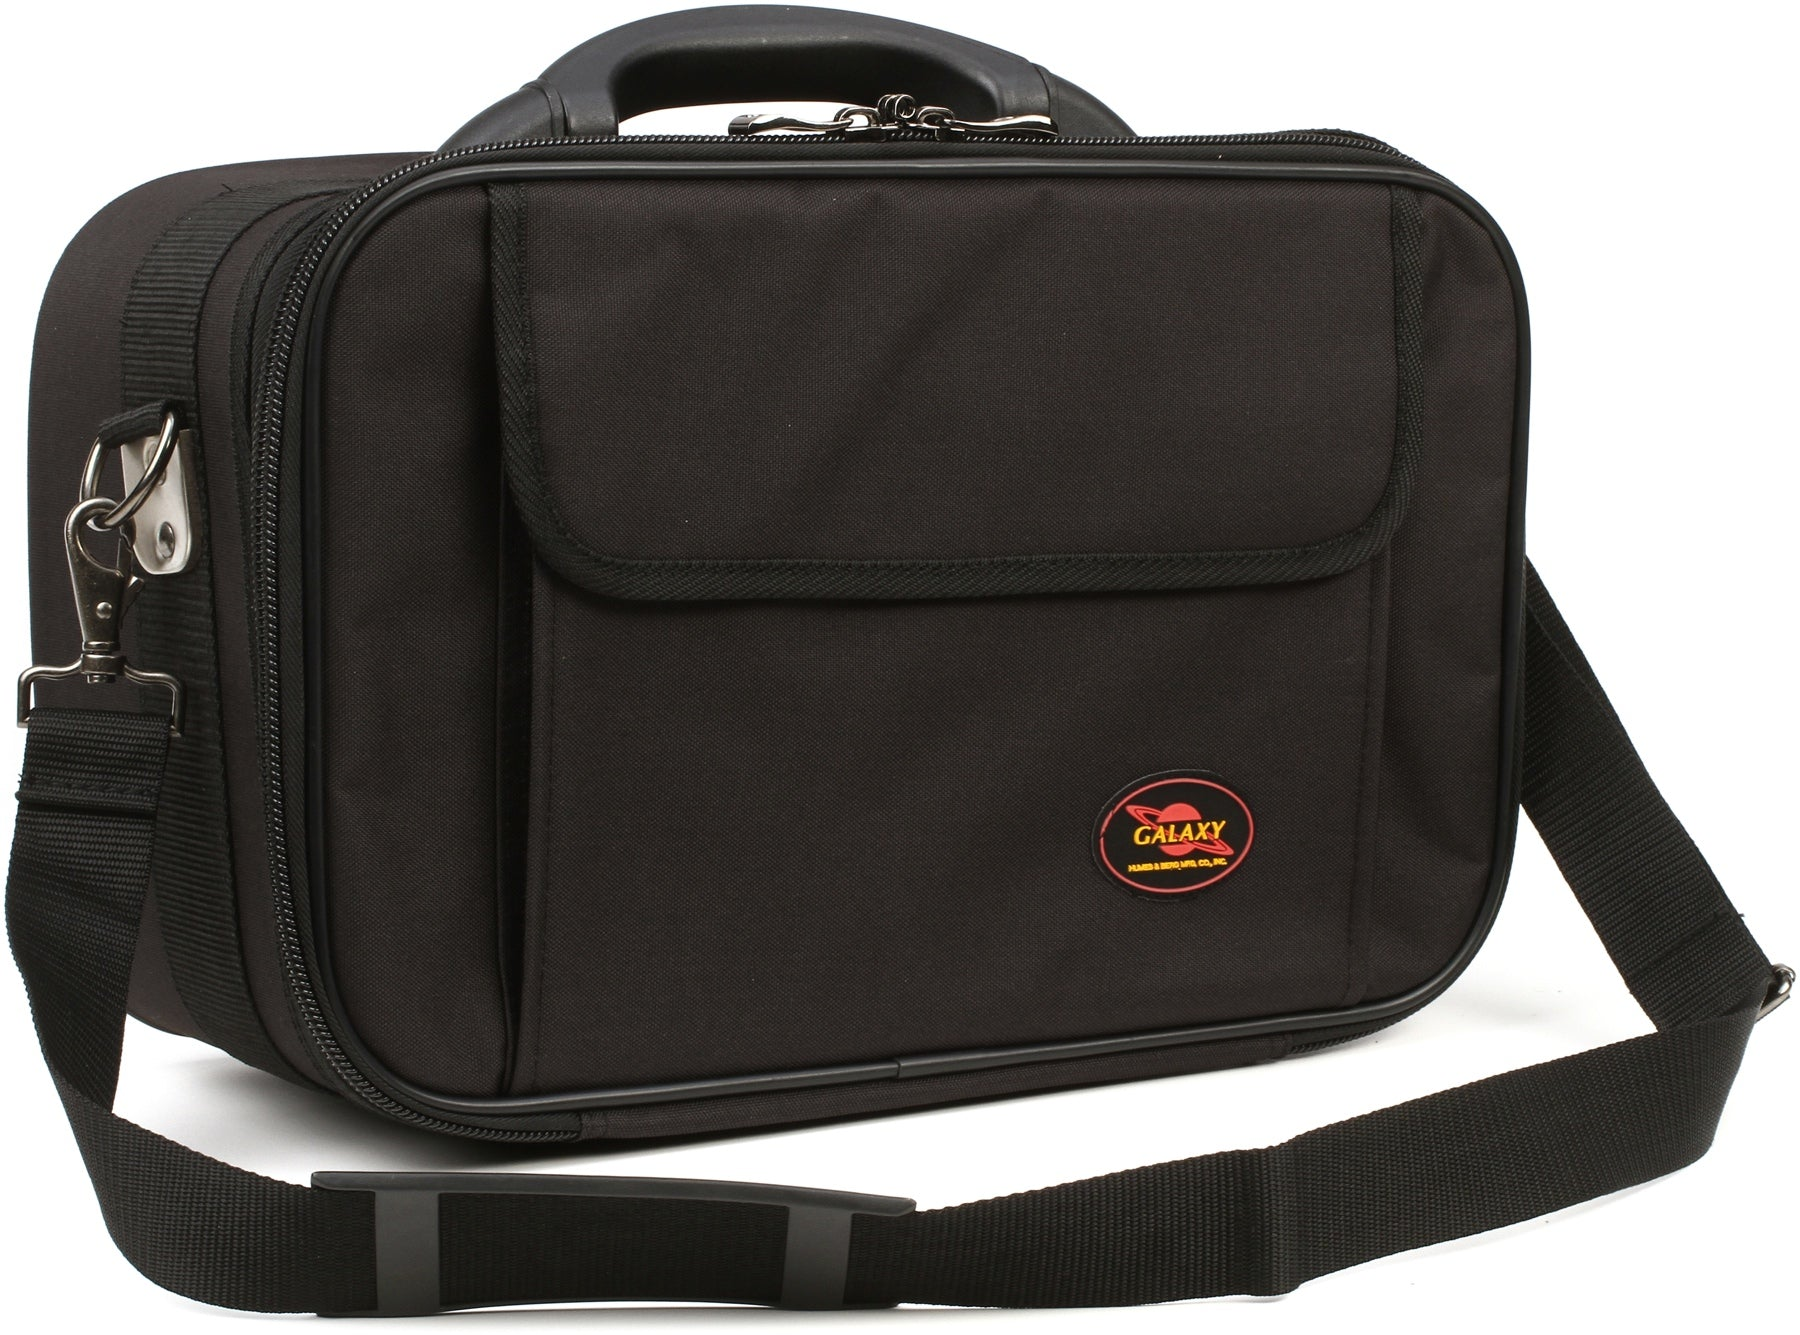 H&B  Galaxy Single Pedal Bag